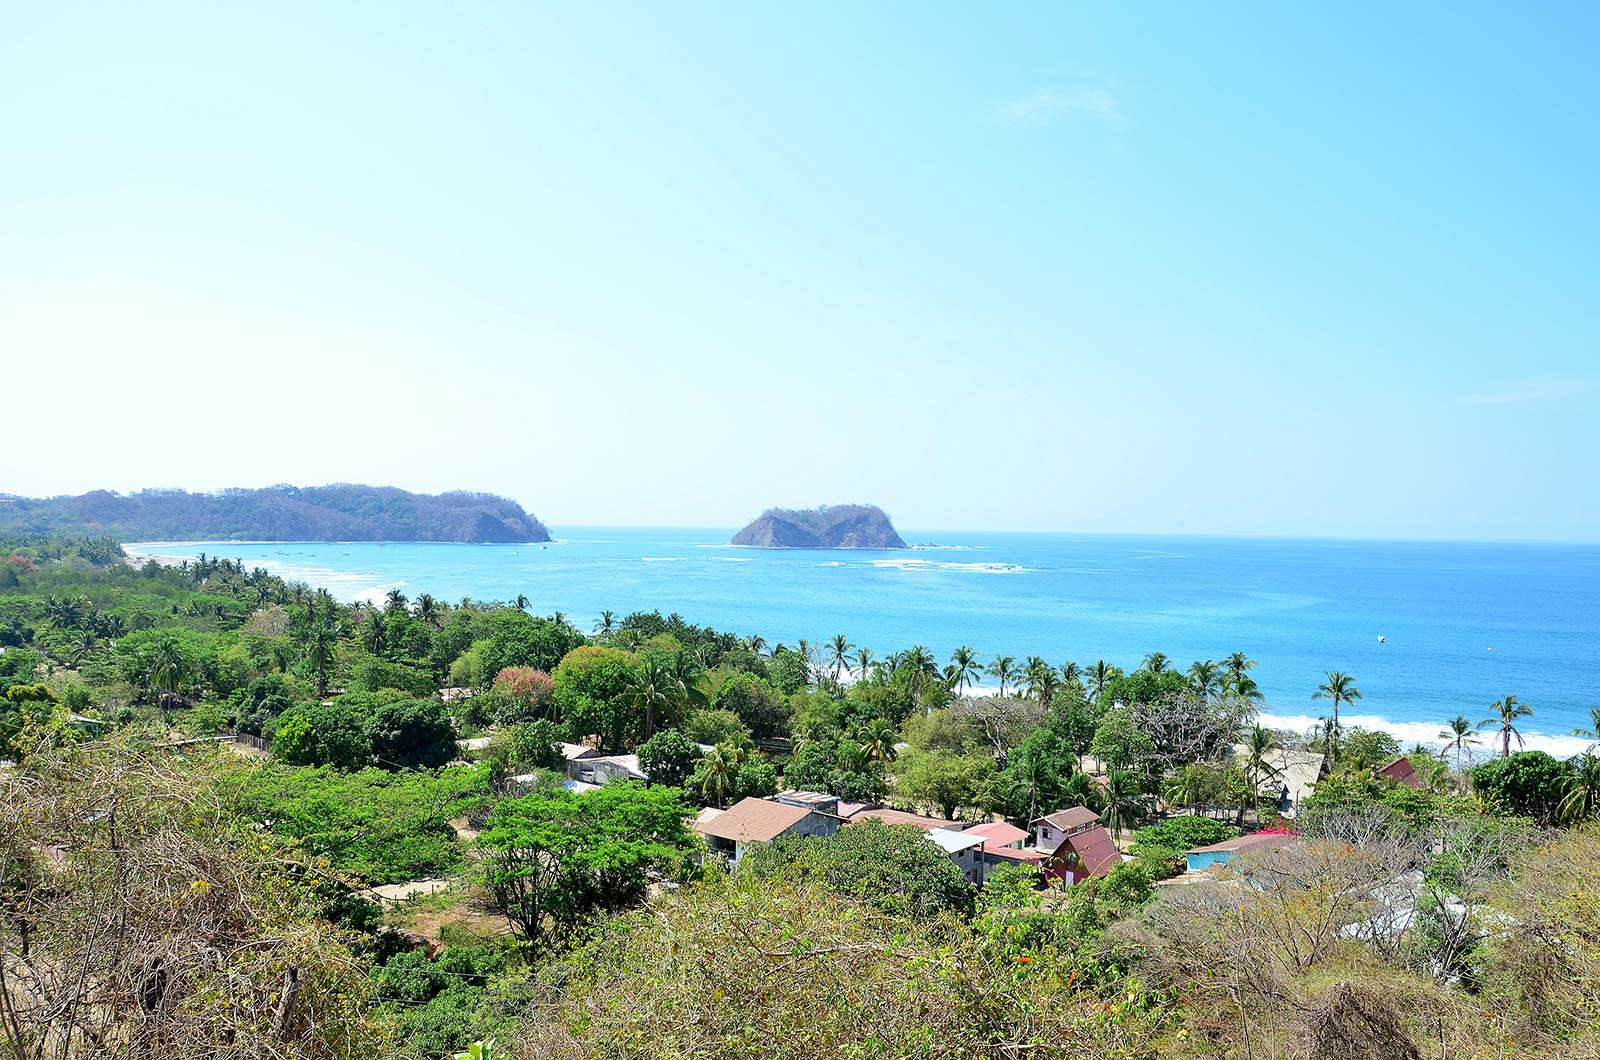 You are looking at what is probably THE BEST ocean view property in the Samara area!